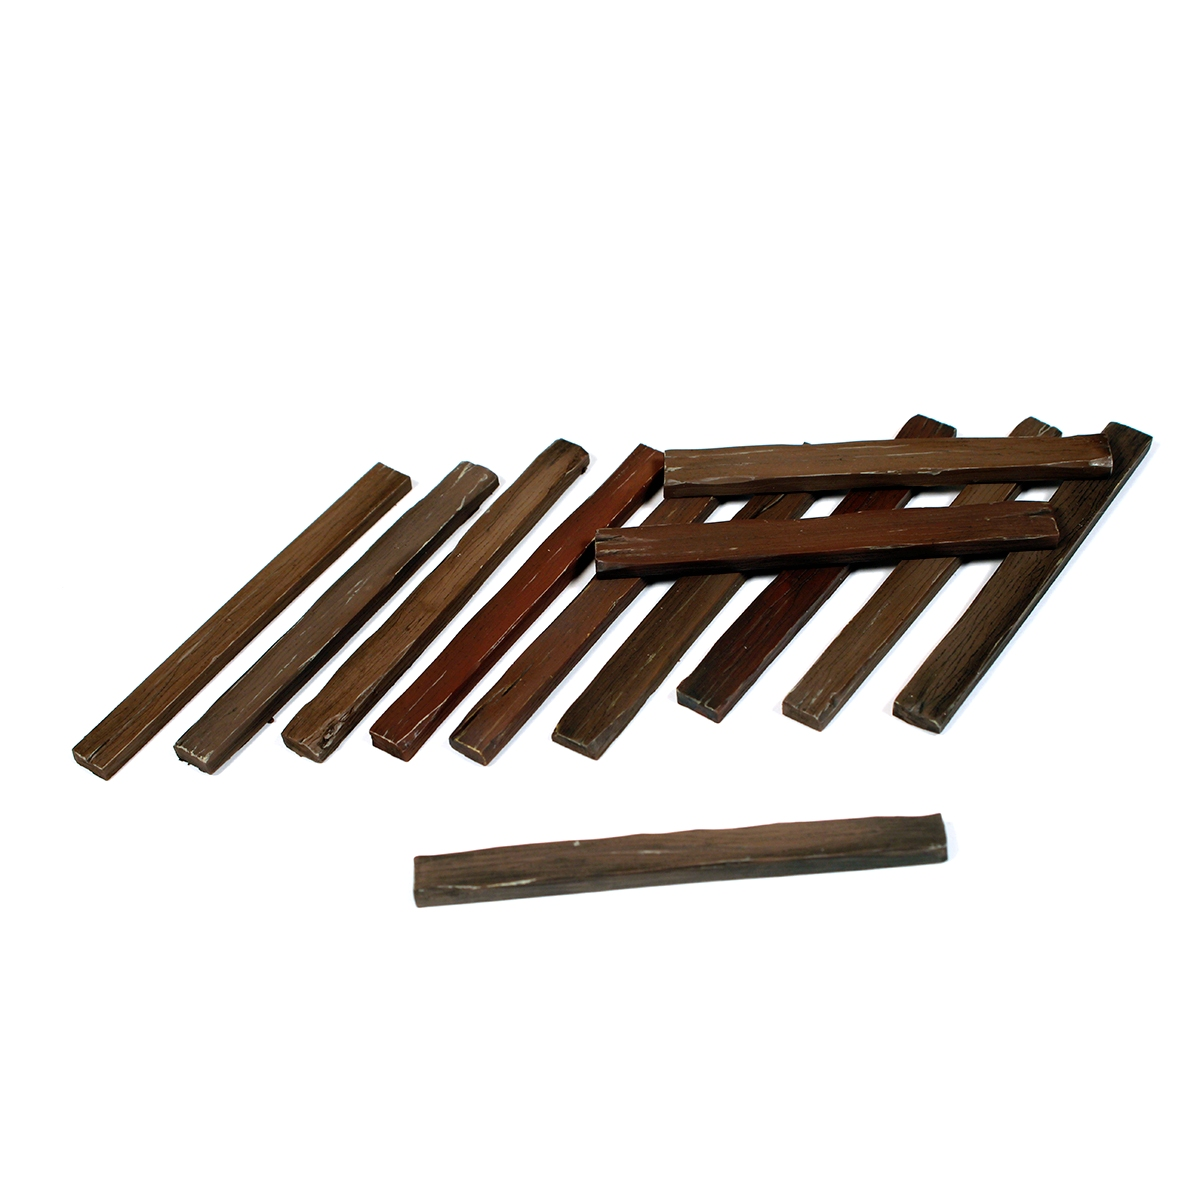 Railway Sleepers (12 pcs.)